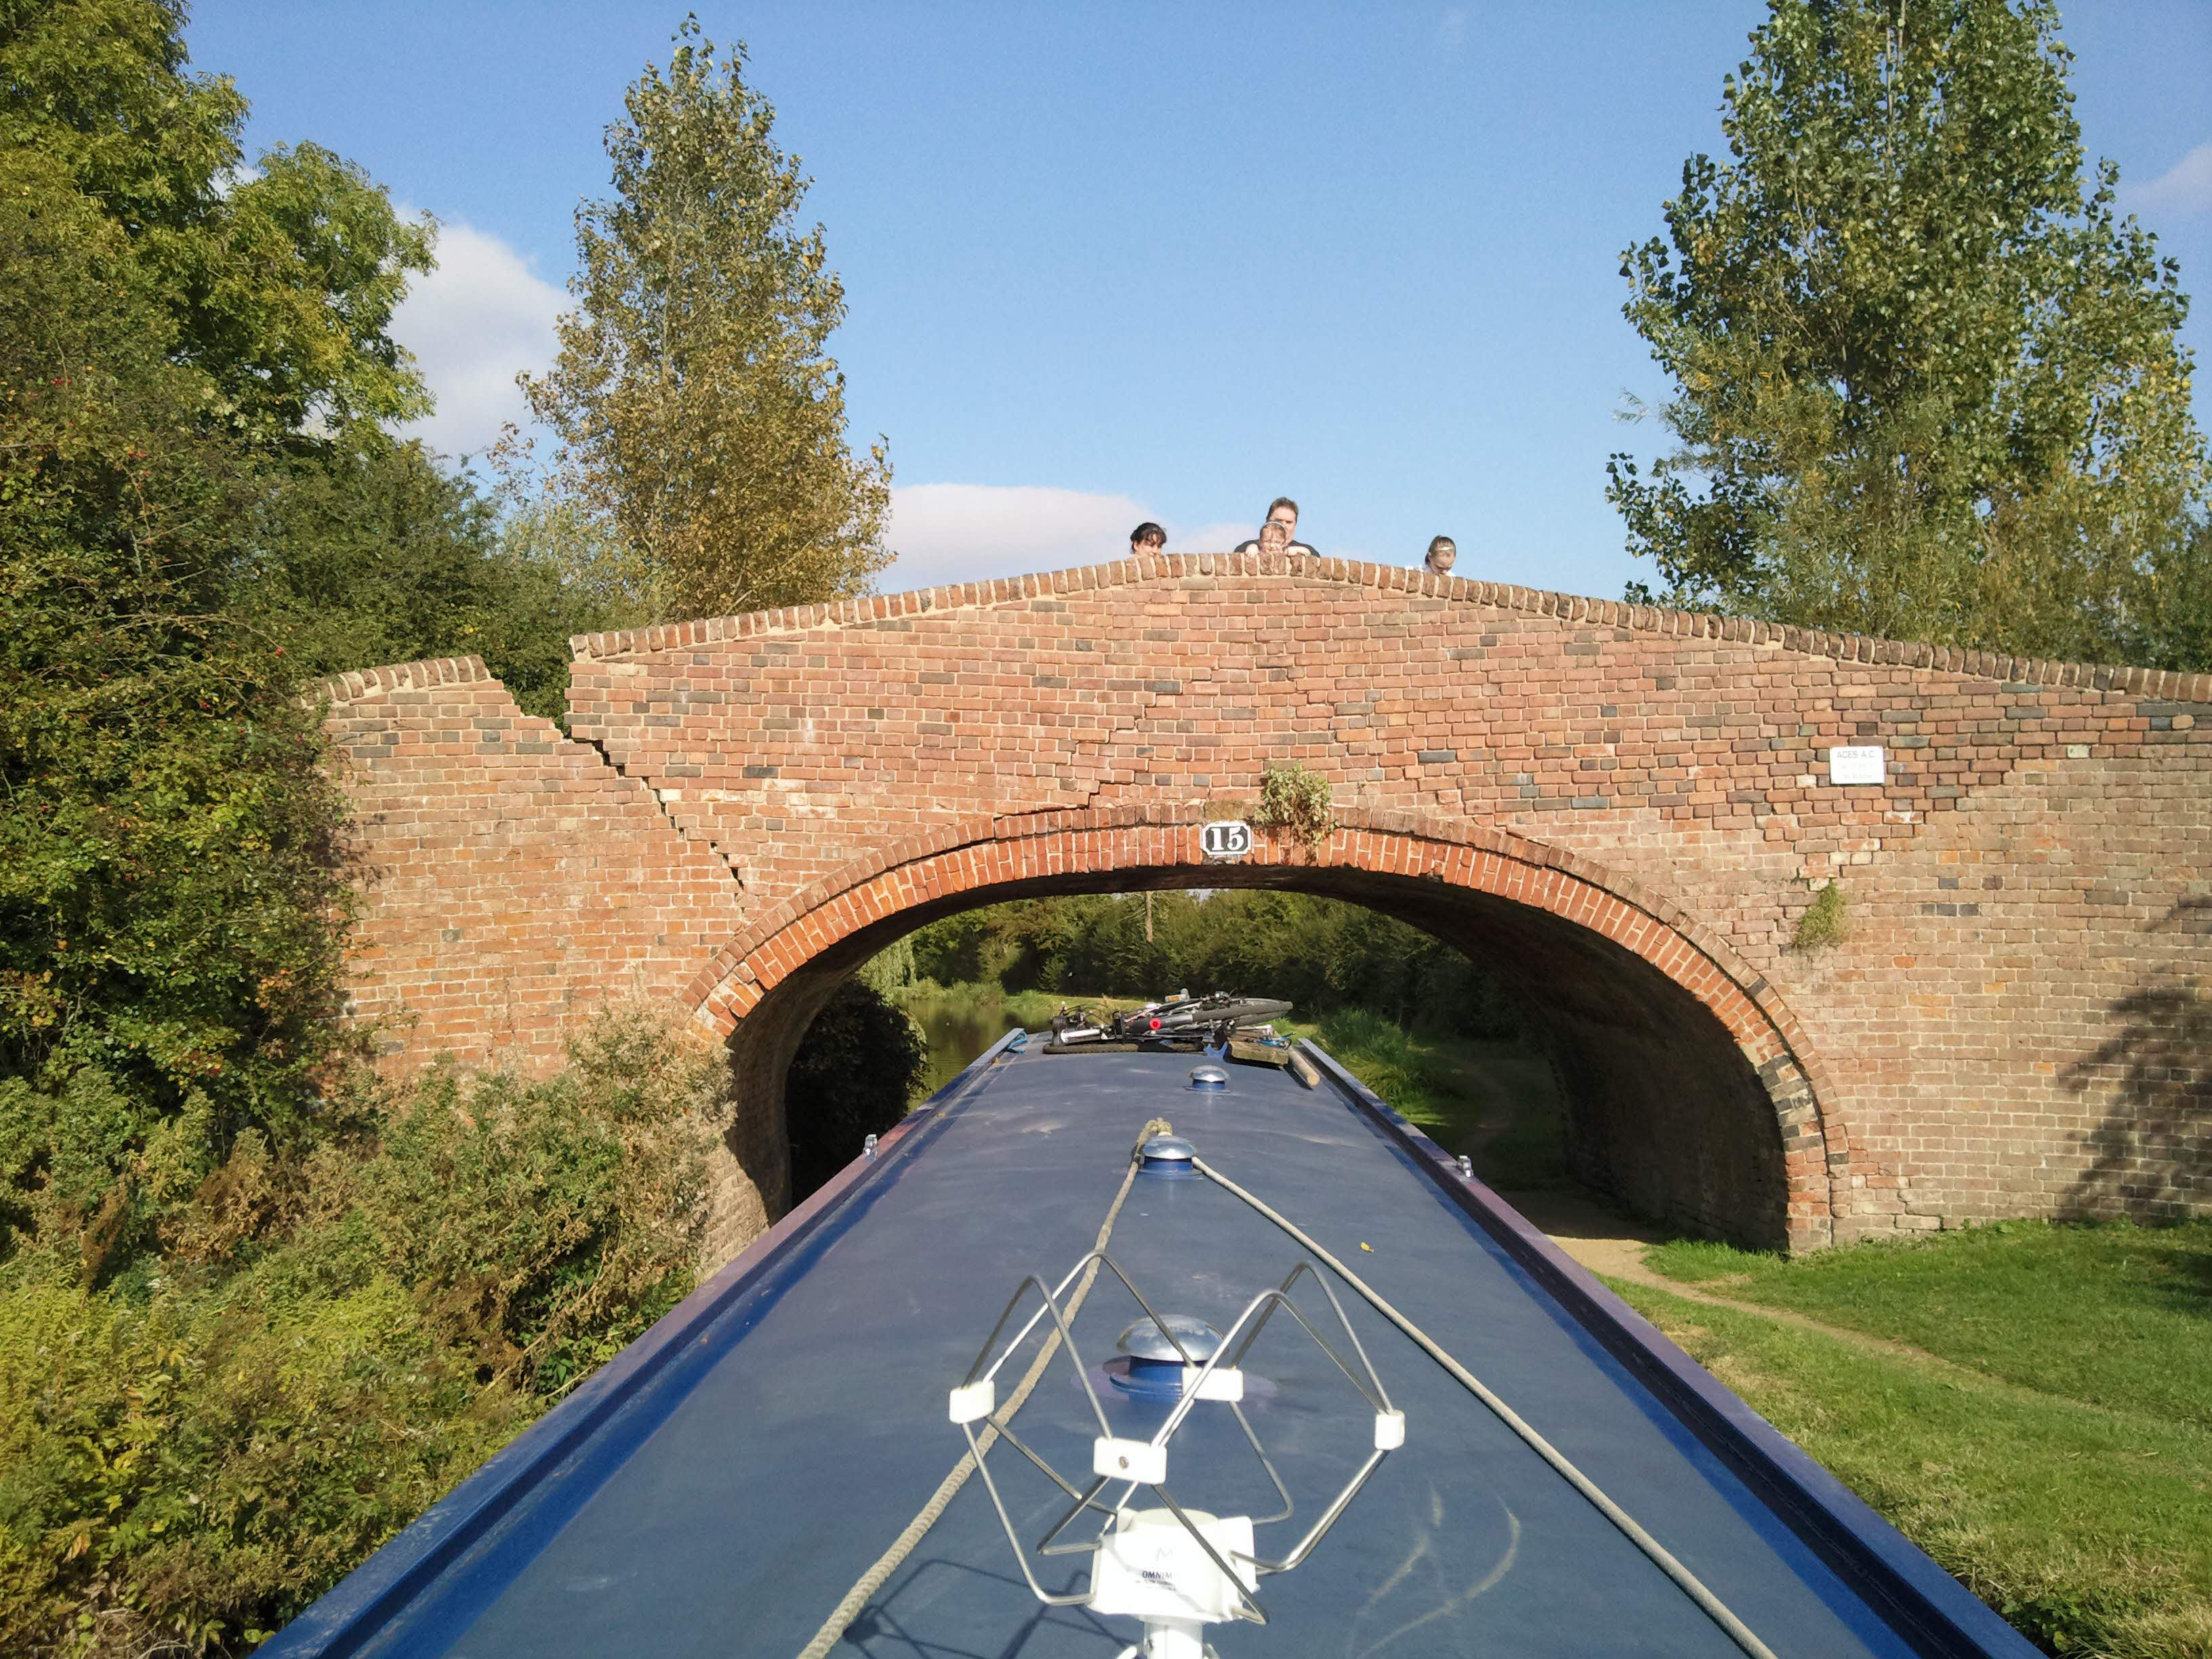 The engineers on board were very concerned about the structural integrity of this bridge - we passed under quickly...